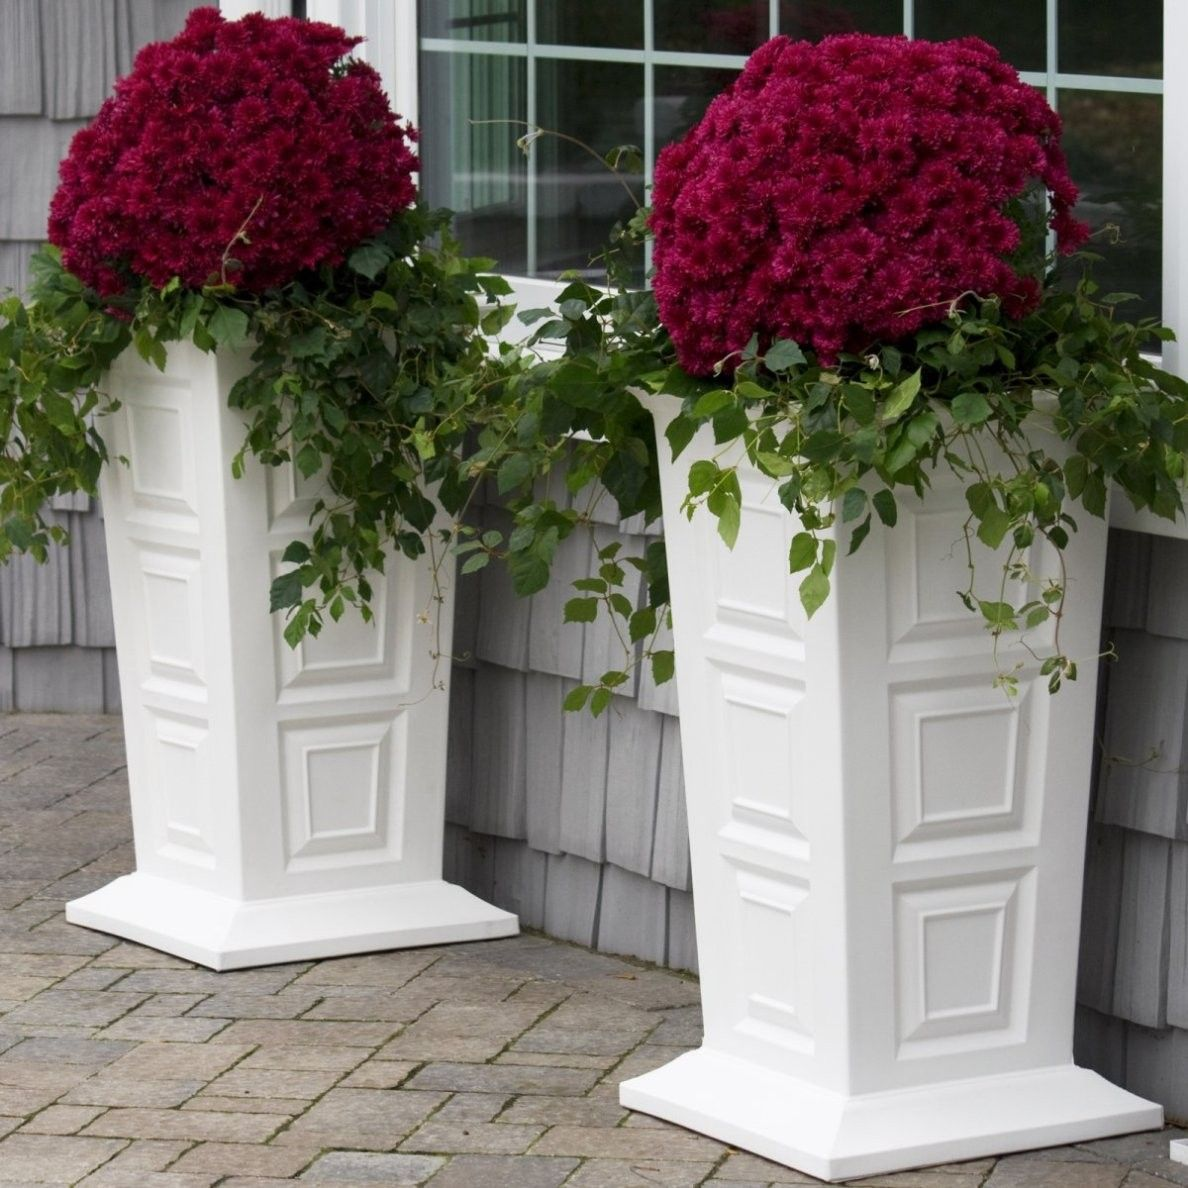 beautiful design flower planter ideas. Charming White Colonial Planter Design With Polyethlene Construction For  Tall Outdoor Flower Planters Ideas Garden Decor Make Your More Beautiful